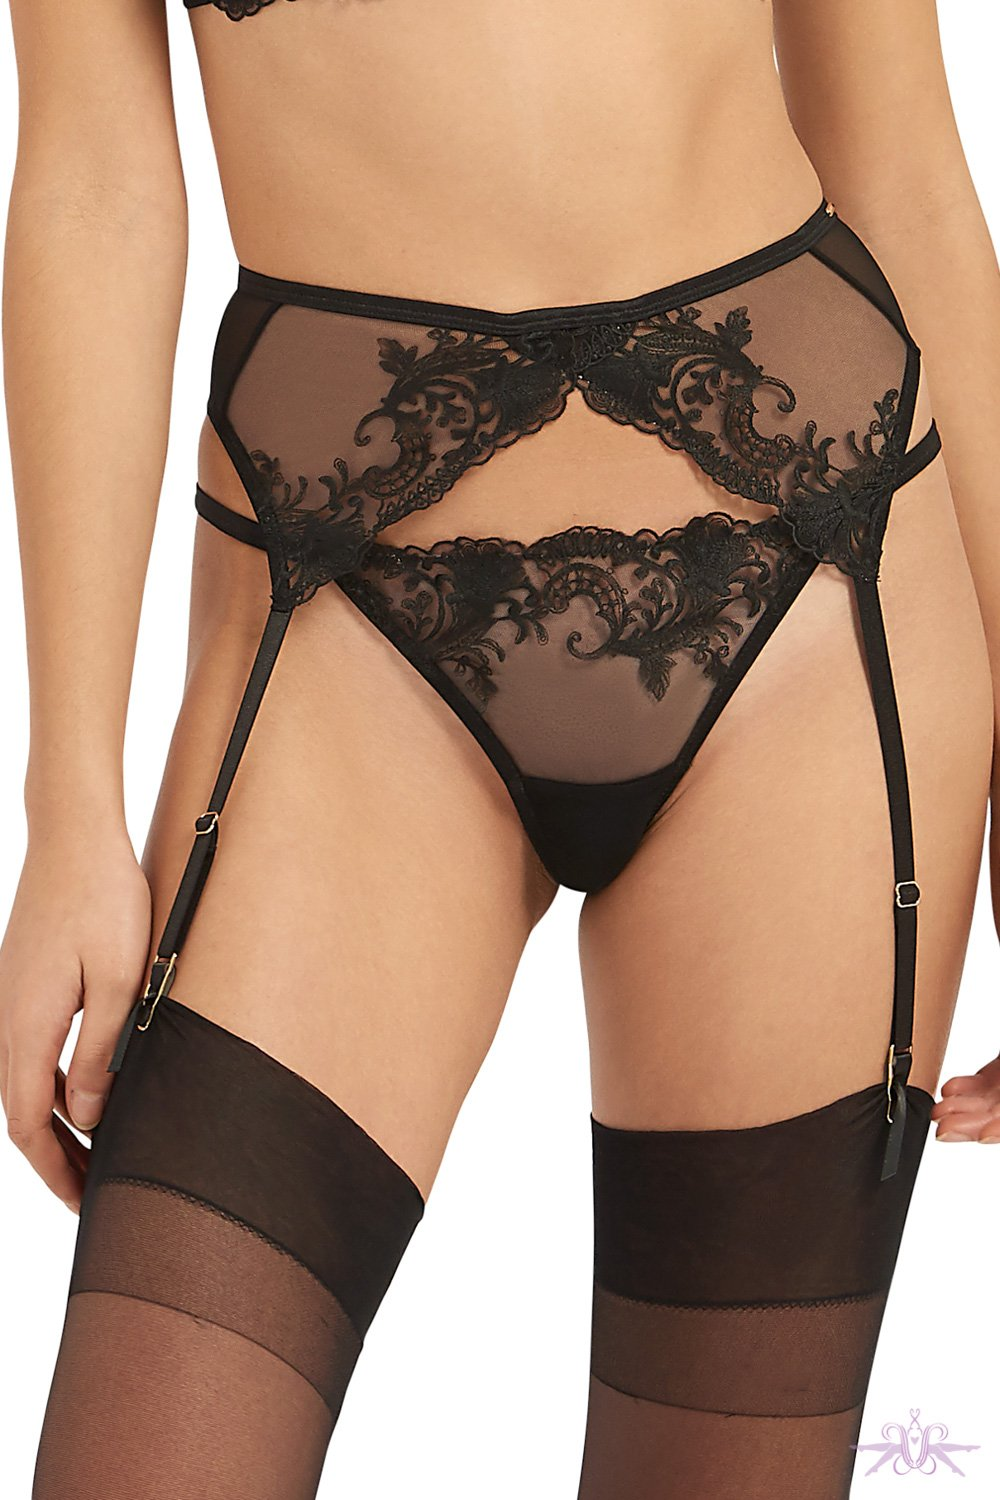 Bluebella Marseille Suspender Belt